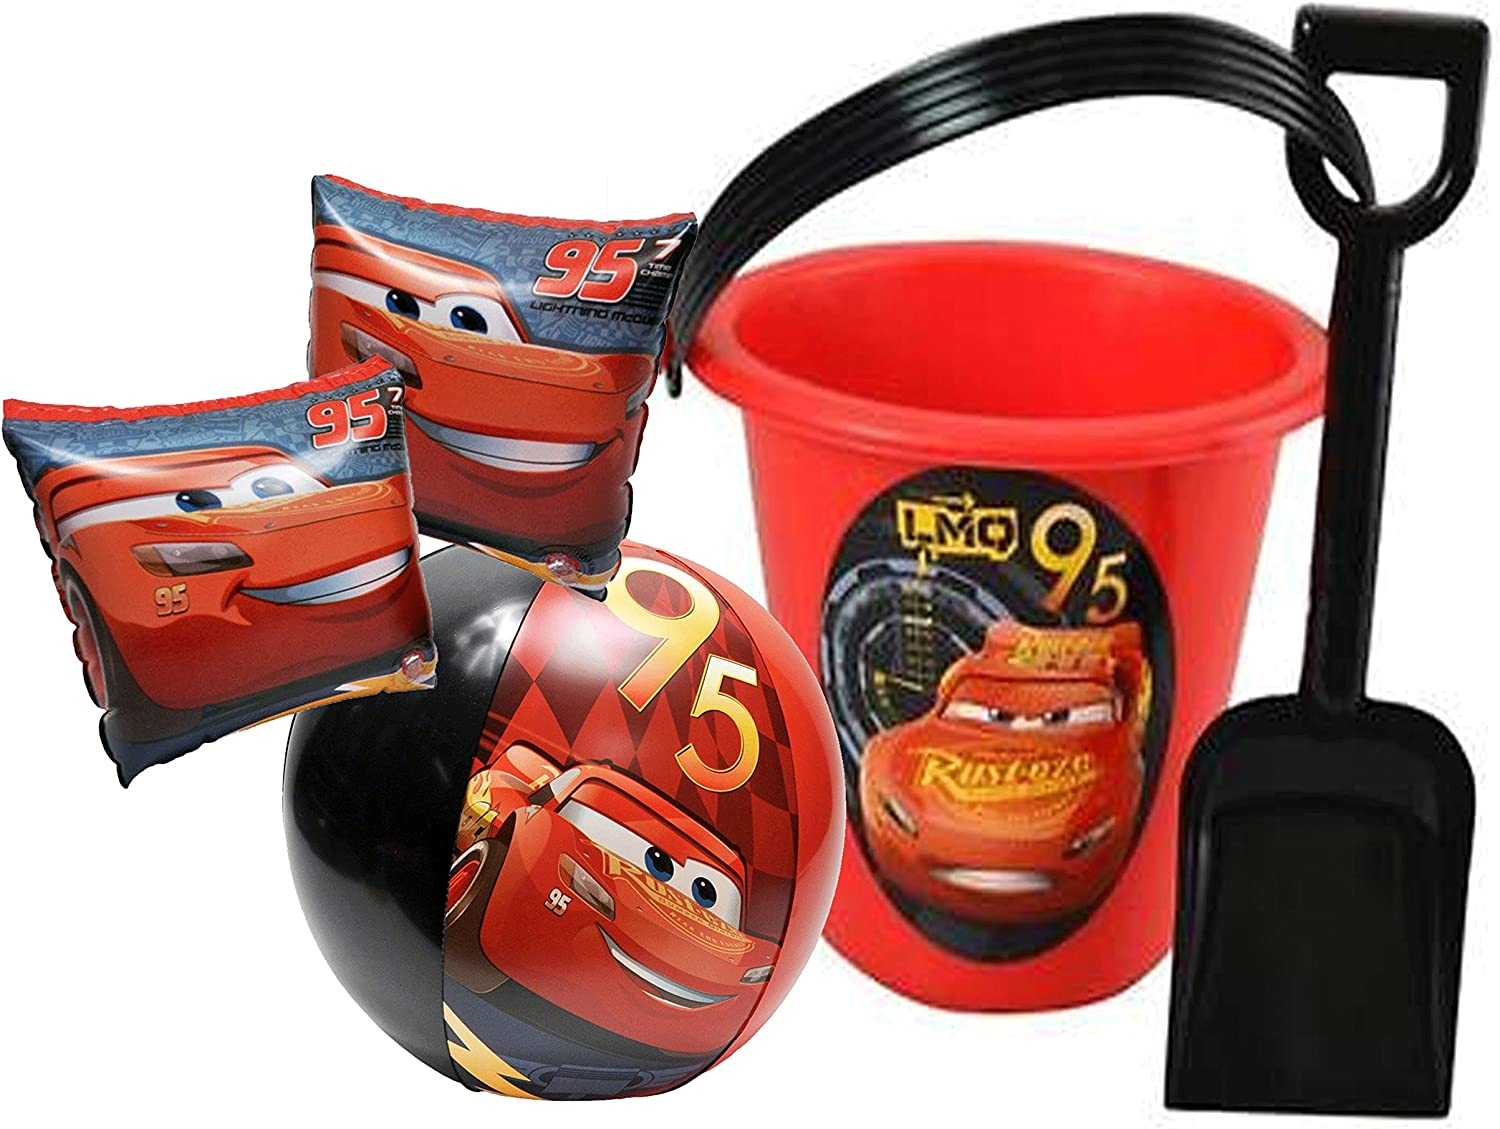 SWIMWAYS CARS 3 LIGHT UP INFLABABLE BEACH BALL